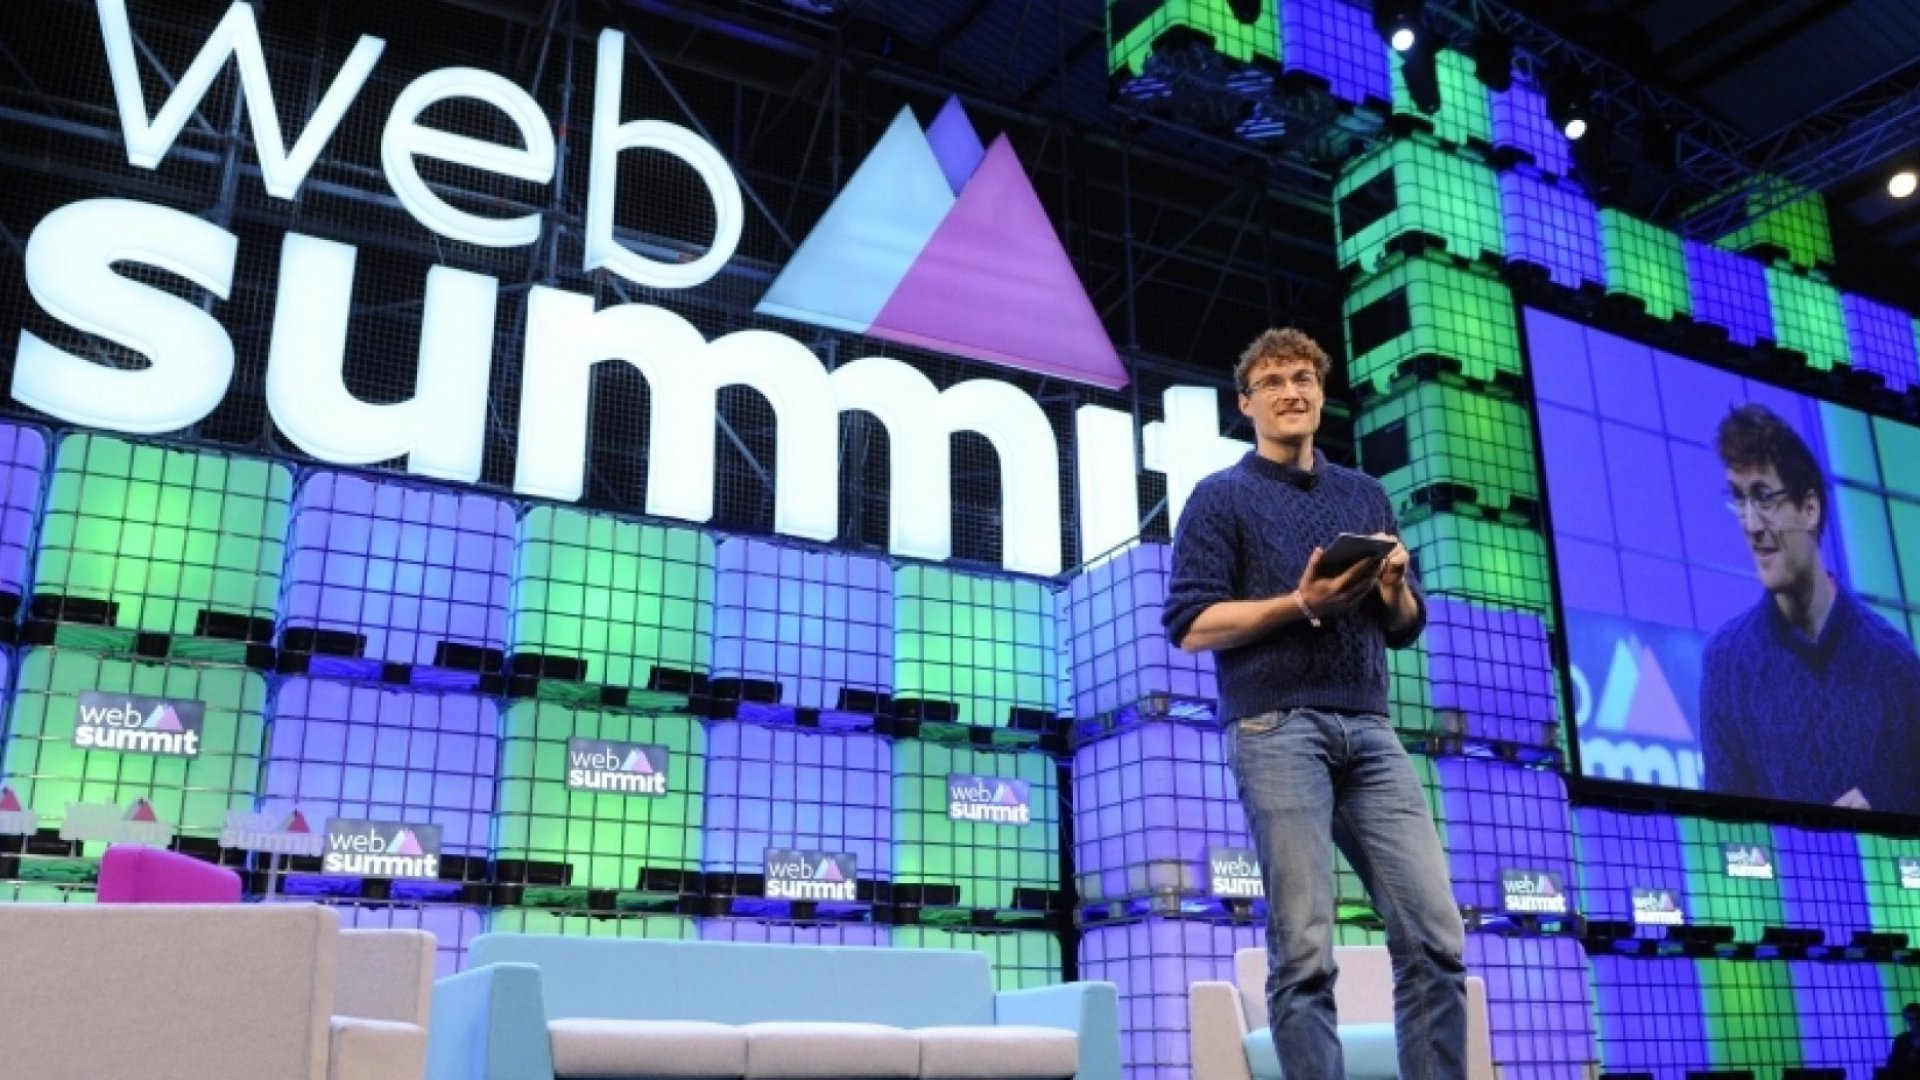 8 Top Tech Conferences You Can't Miss This Fall